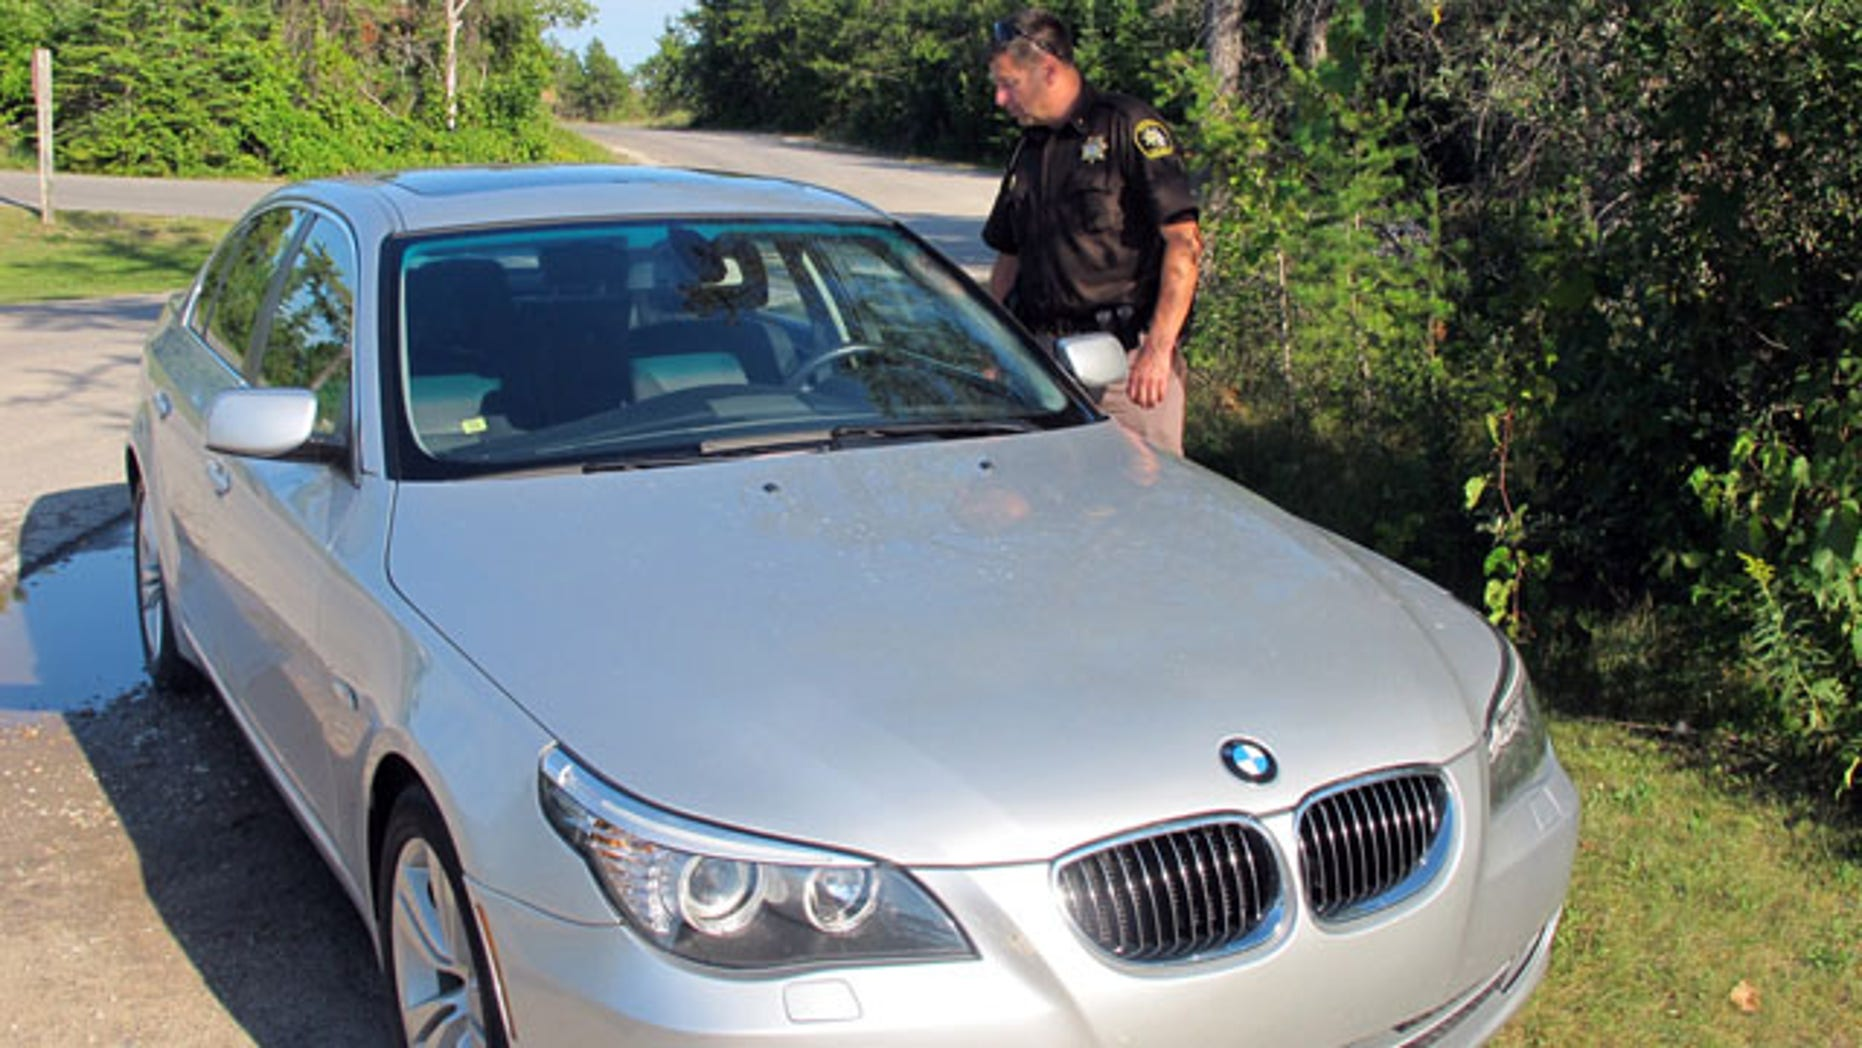 August 26, 2013: Mike Borkovich, sheriff of Leelanau County, Mich., examines a car parked at Sleeping Bear Dunes National Lakeshore that is believed to have been used by a missing man and his three children. The man, who is wanted on a domestic violence charge, and his children have been found safe. (AP Photo)